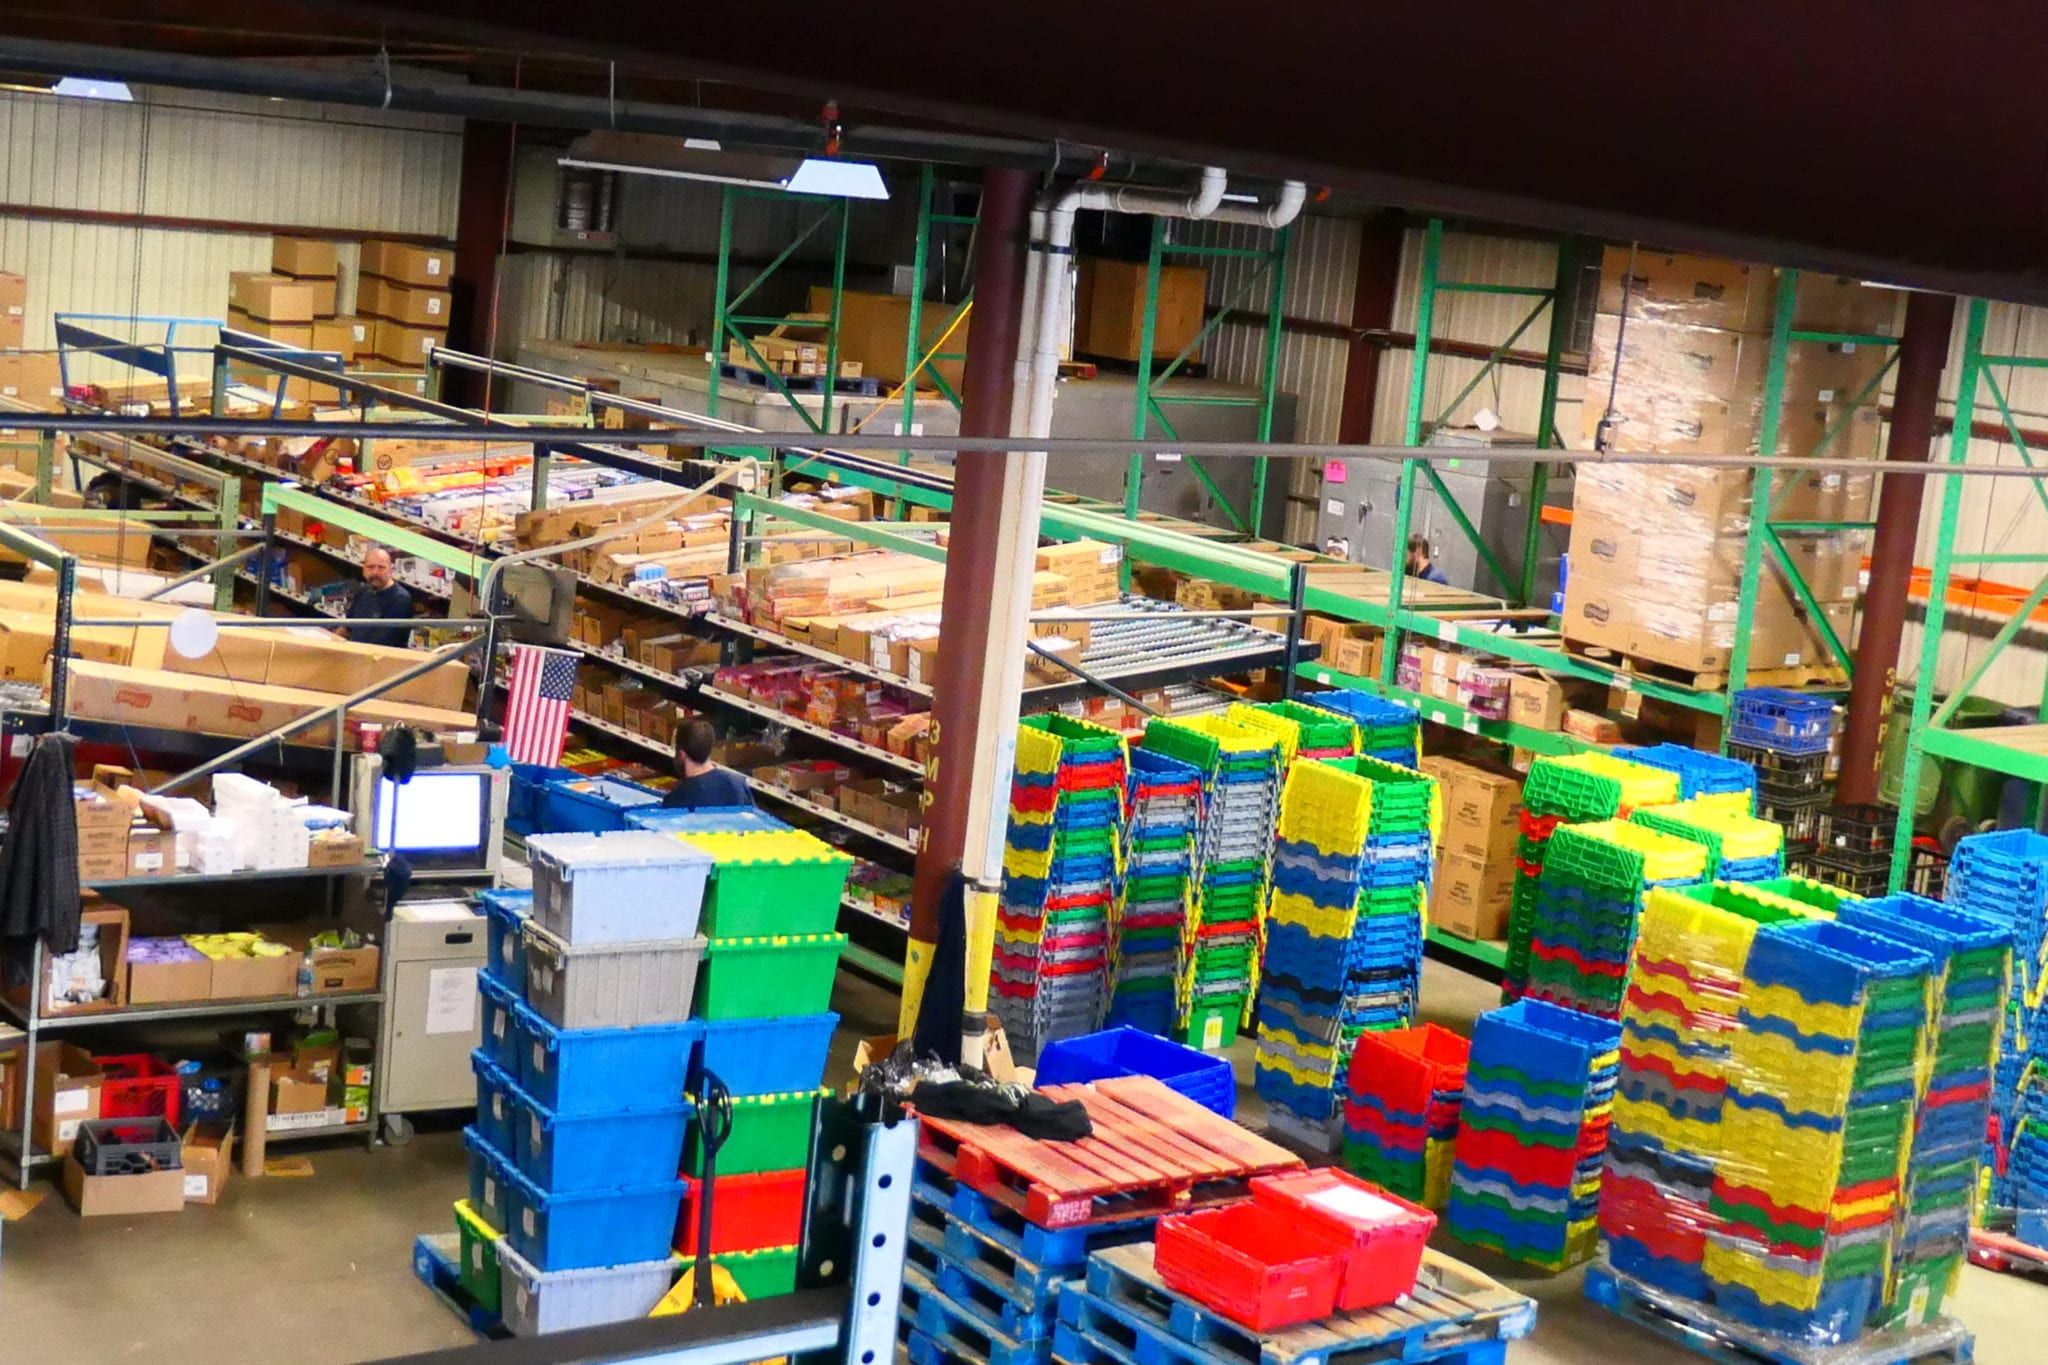 A fully modernized warehouse to supply our accounts with snacks and refreshments